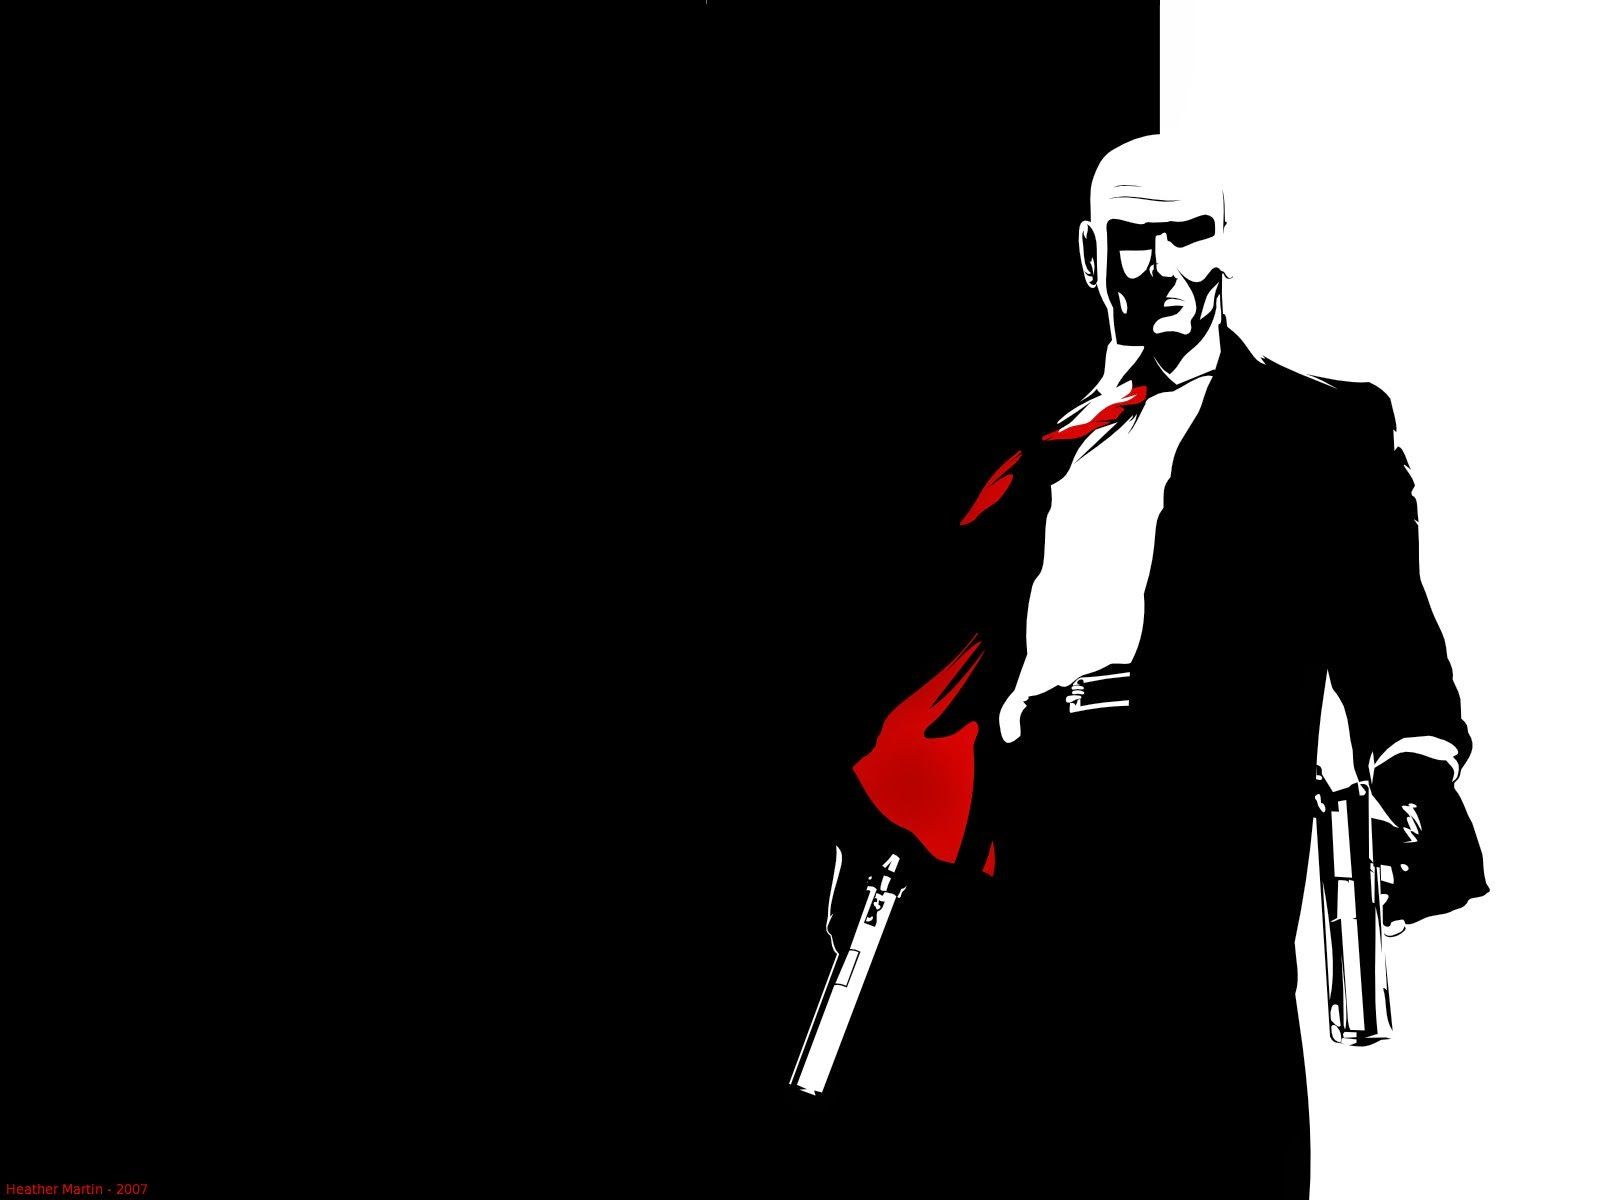 Hitman Agent 47 HD(high definition) Wallpapers - 2 - Sri The Creator